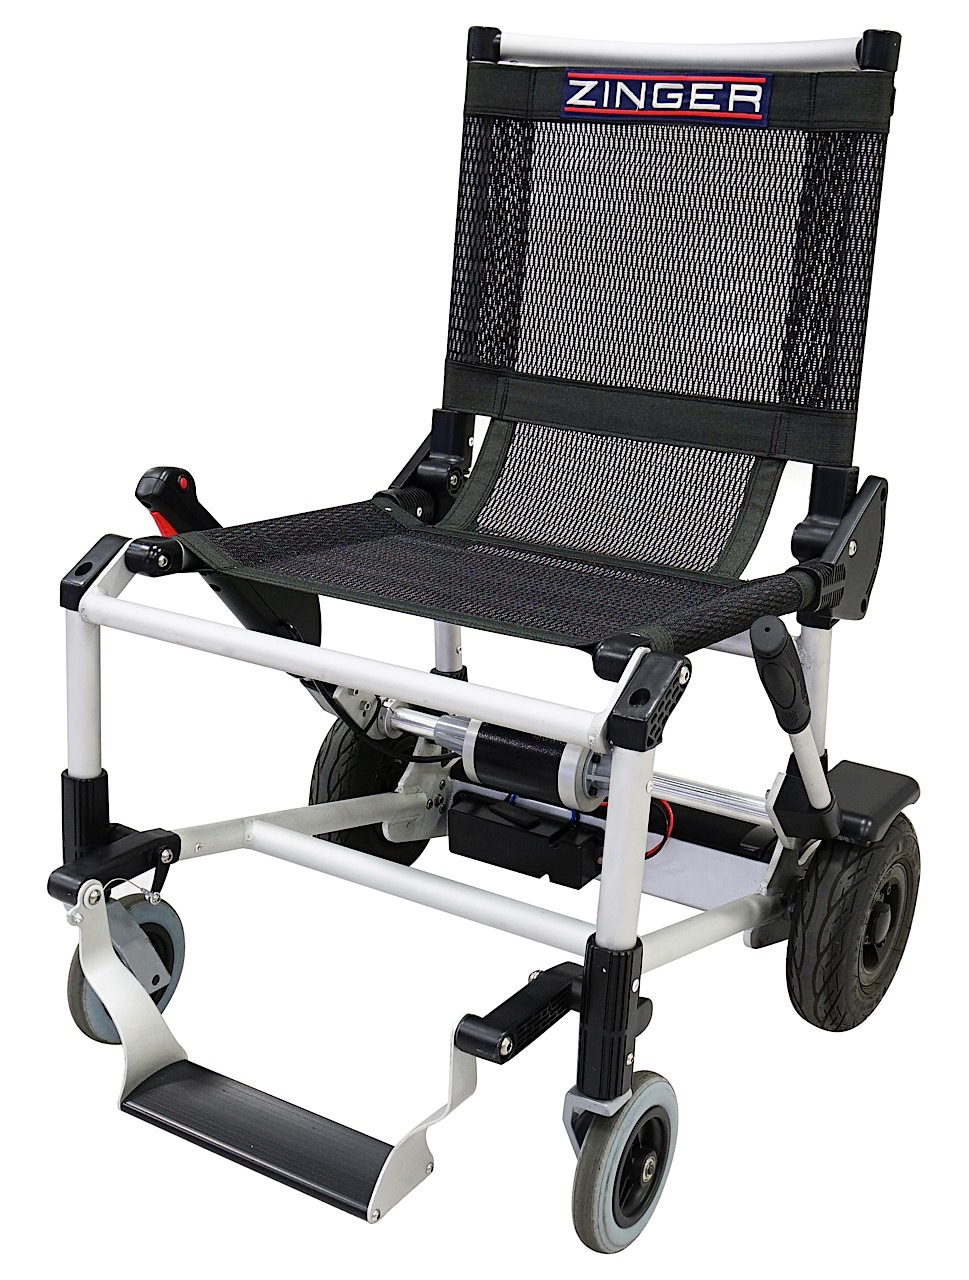 Zinger Powered Chair Zinger Your Personal Powered Chair